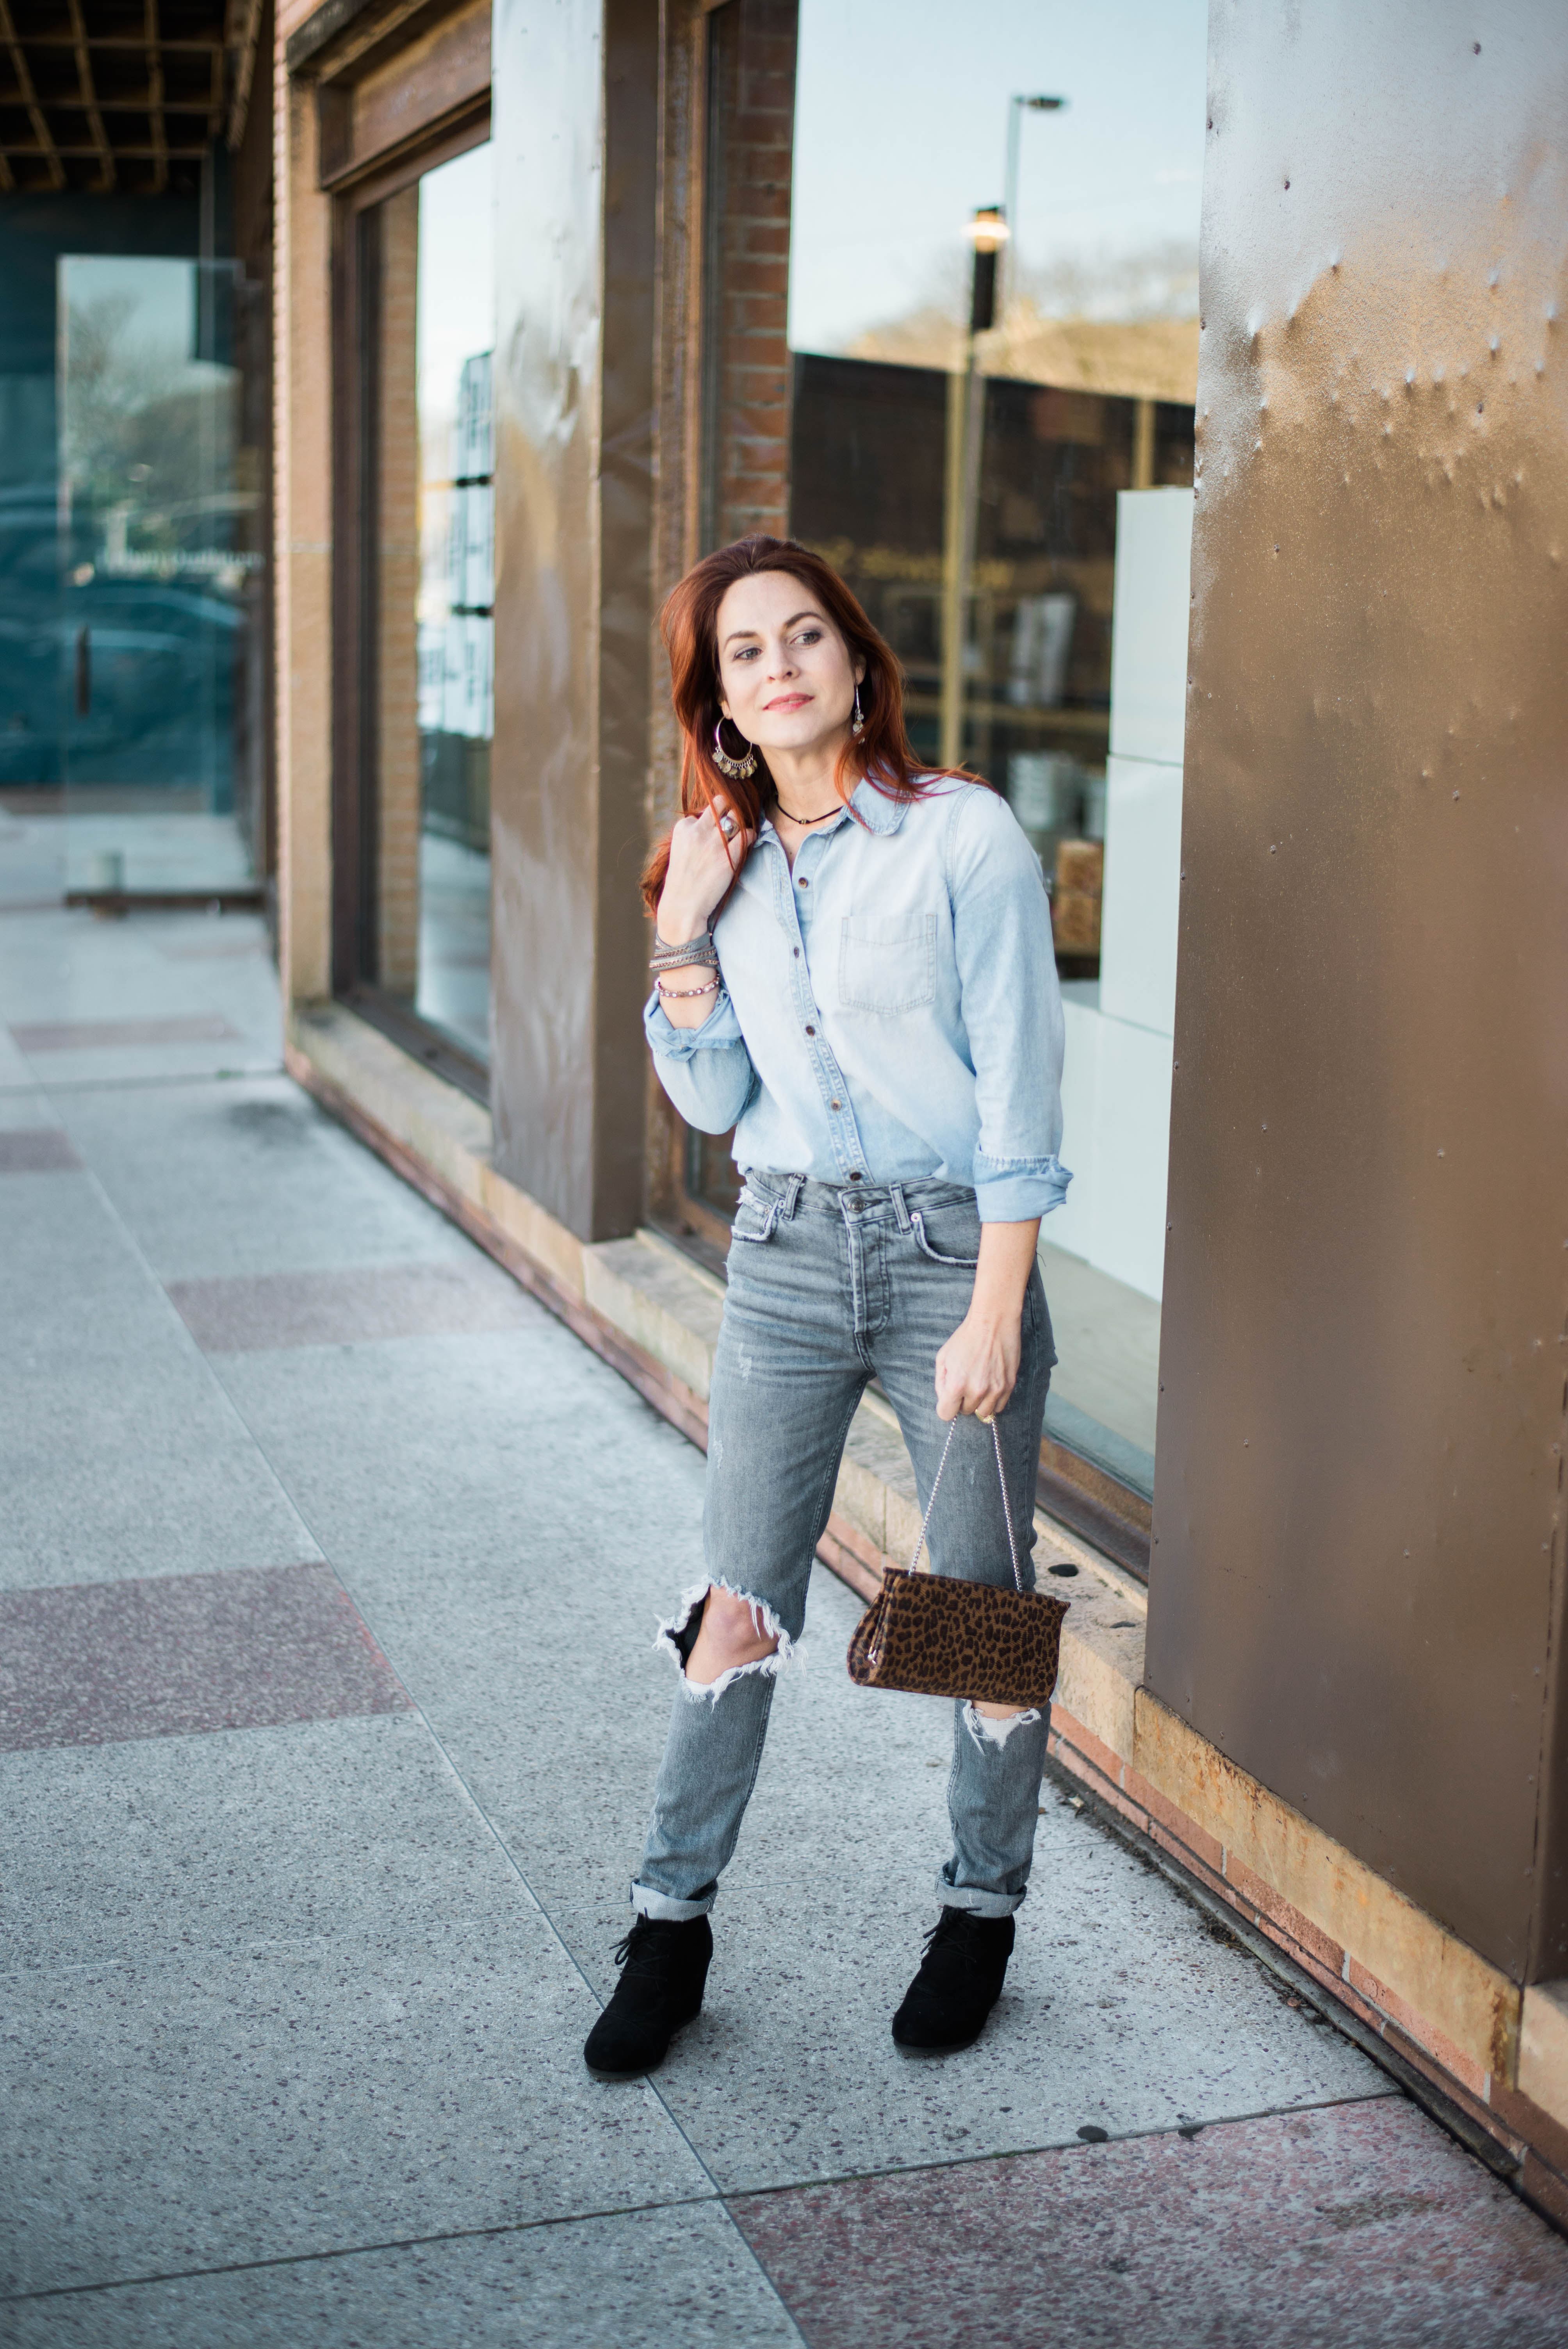 outfit ideas with pairing denim together, distressed jeans, light wash jeans, leopard bags, how to add leopard print to an outfit, denim on denim outfit inspiration